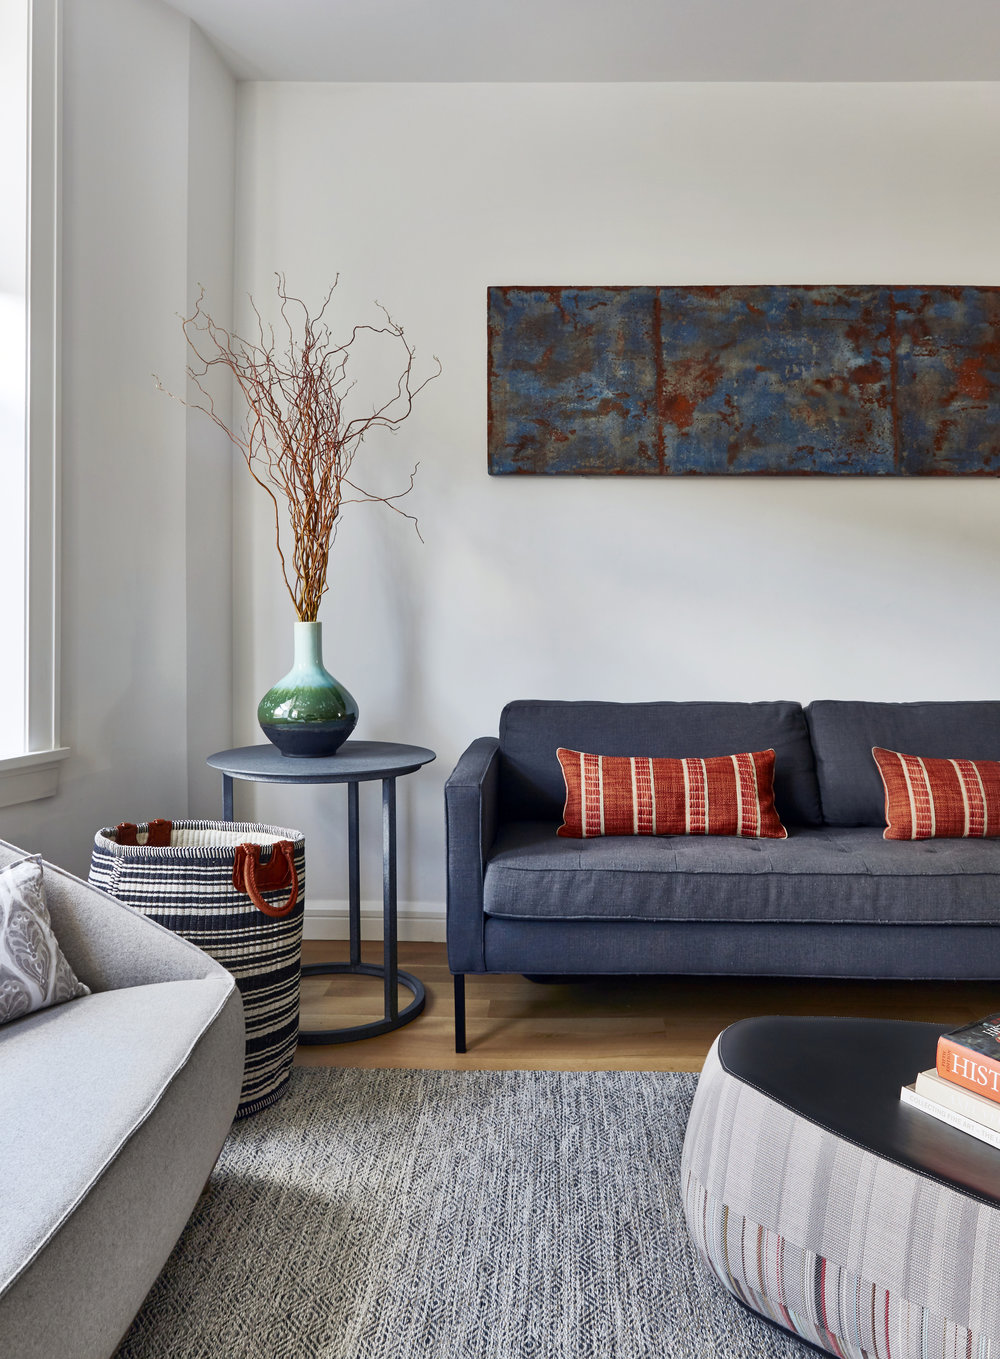 Blue-Dot-Sofa-Red-Cushions-Modern-Living-Room-JMorris-Design-Brooklyn.jpg